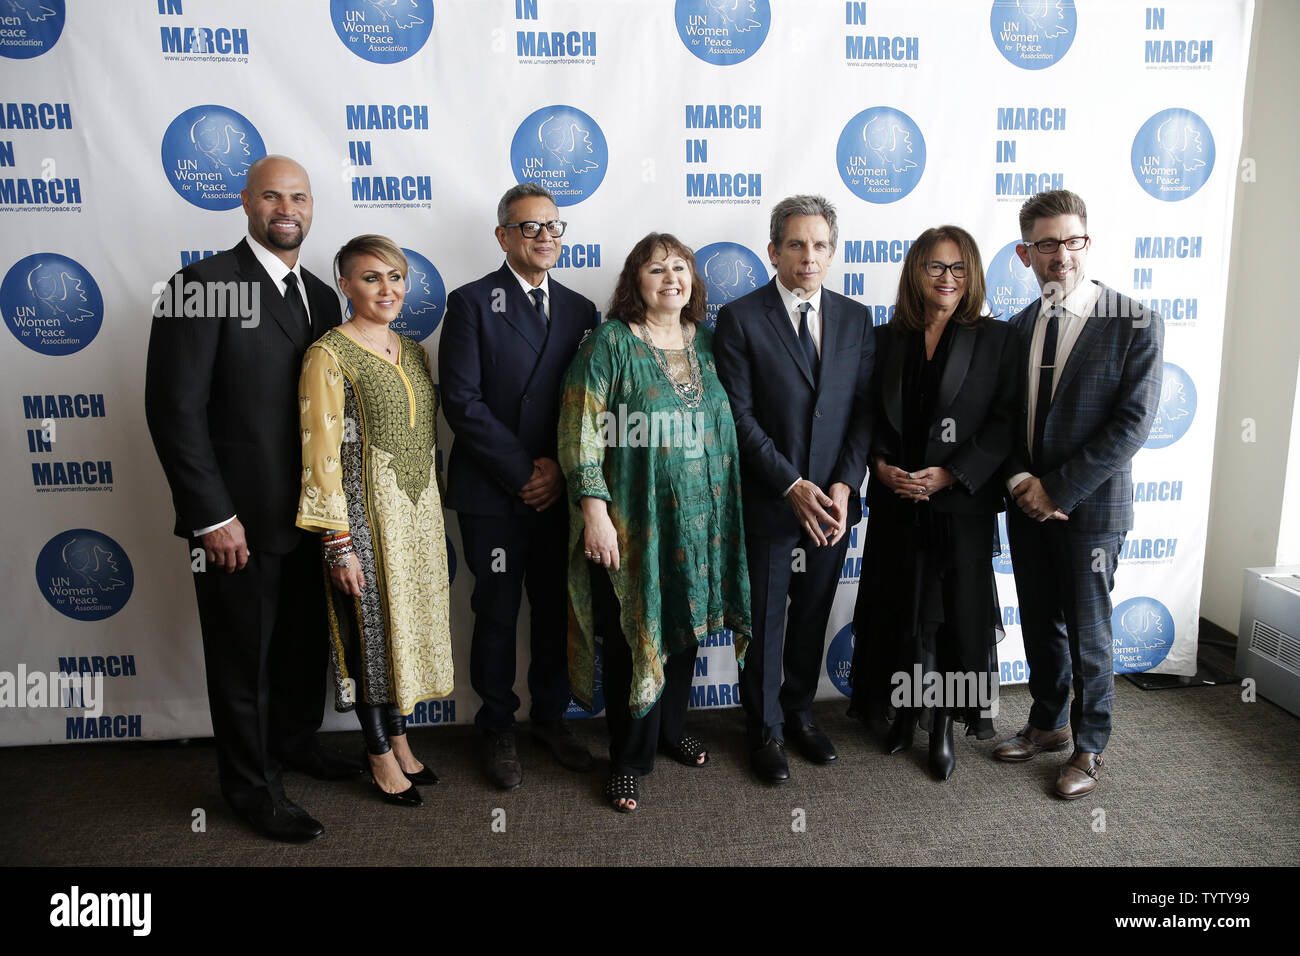 United Nations Delegates Dining Room High Resolution Stock Photography And Images Alamy